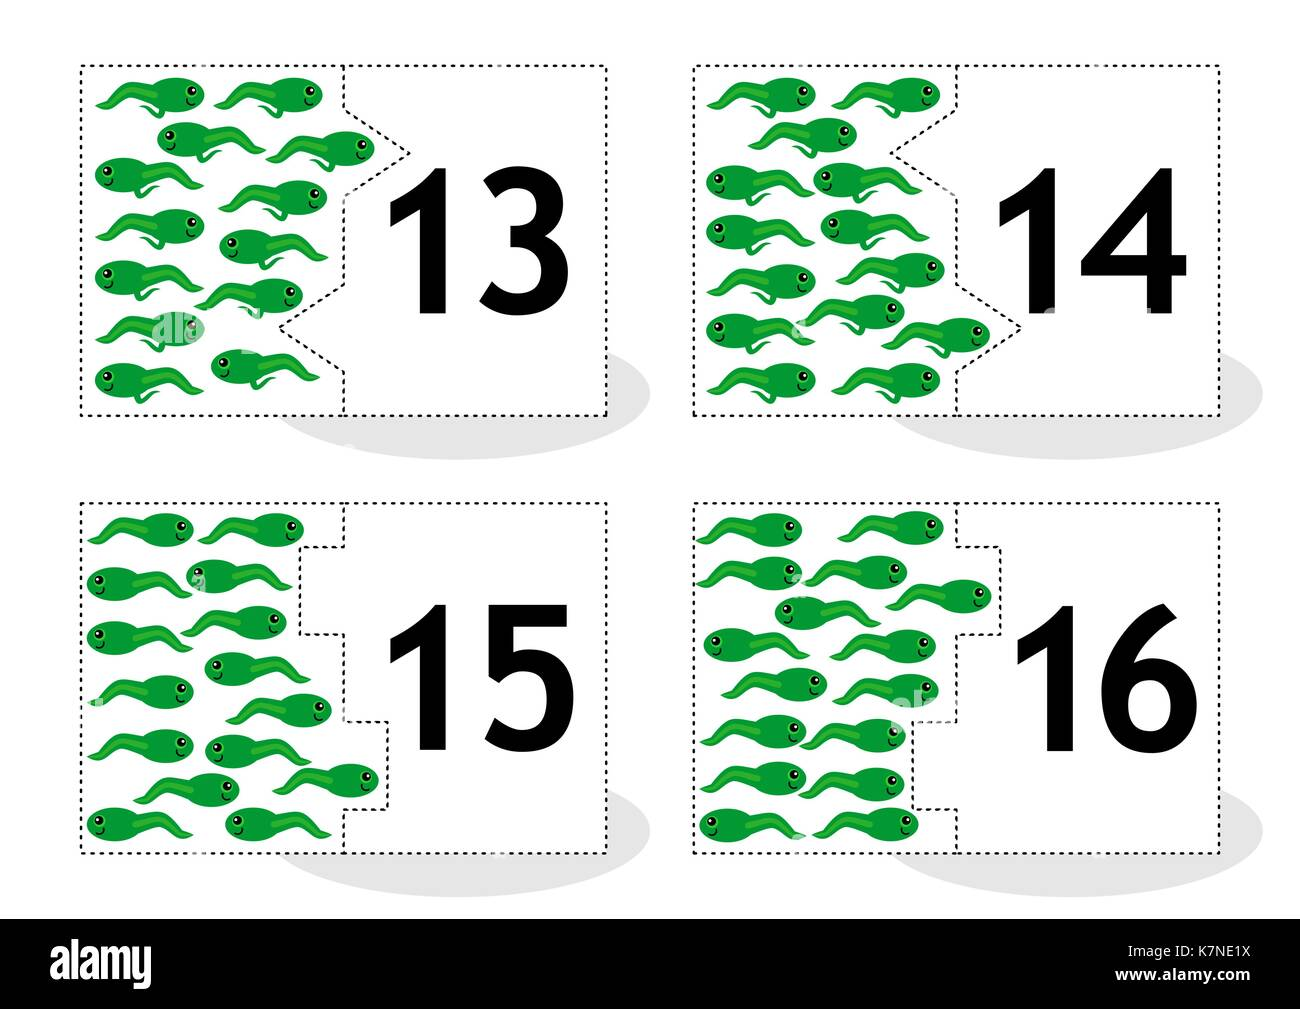 Learn counting 2-part puzzle cards to cut out and play, frog newts and tadpoles themed, numbers 13 - 16 - Stock Image